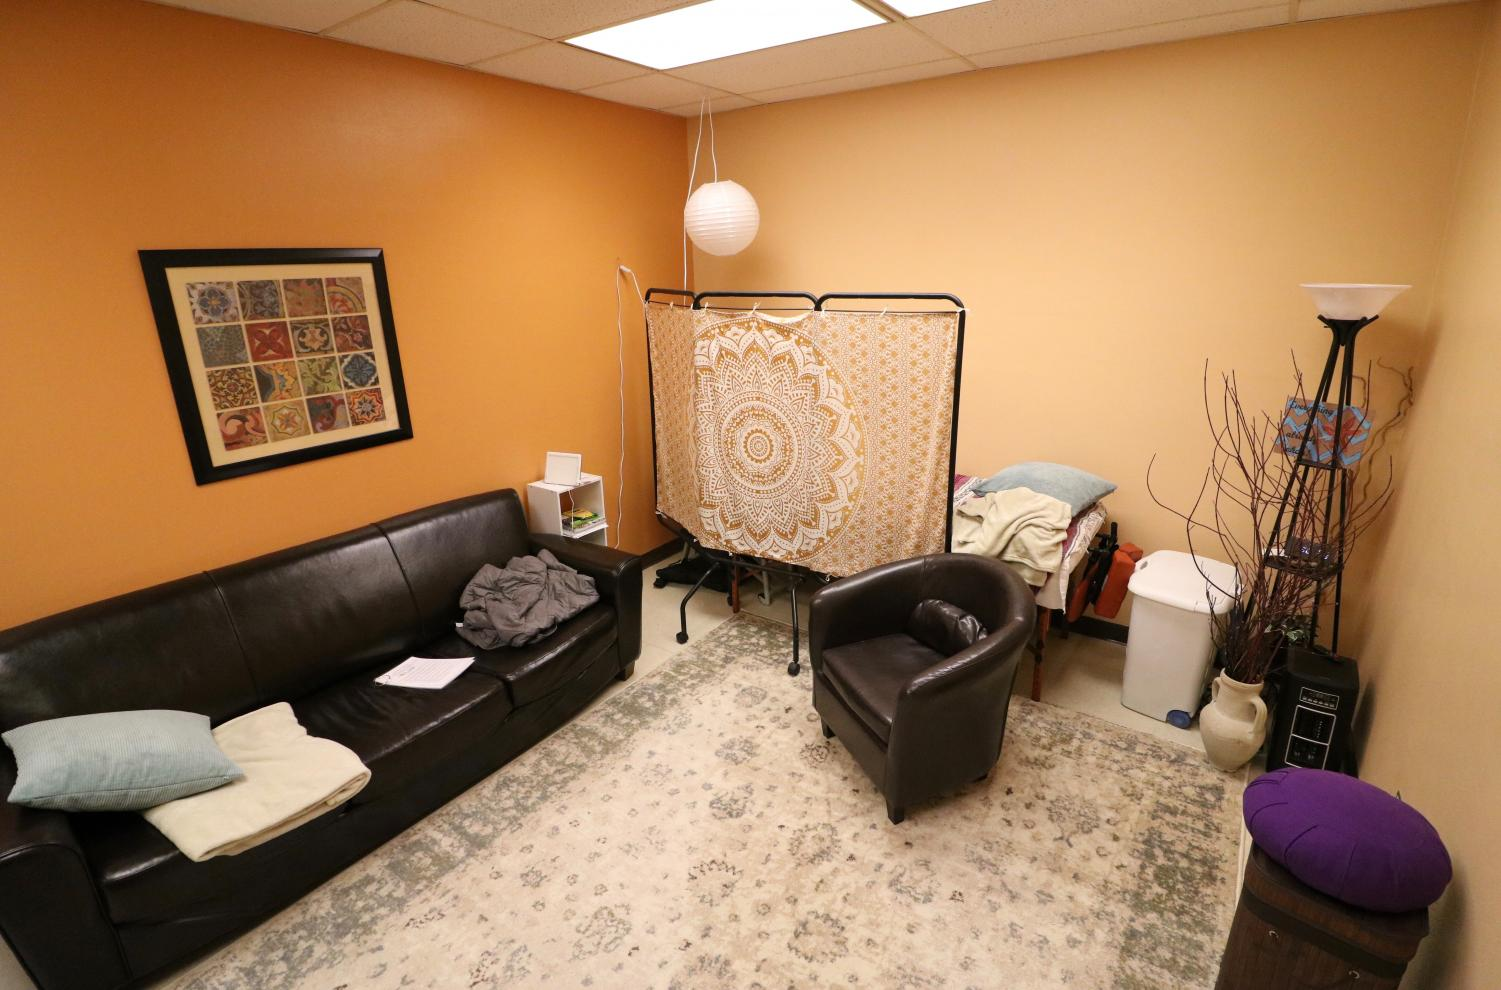 The relaxation room is a spot on campus equipped with comfy chairs, a stereo, blankets and optional light therapy session to keep students safe from stress.